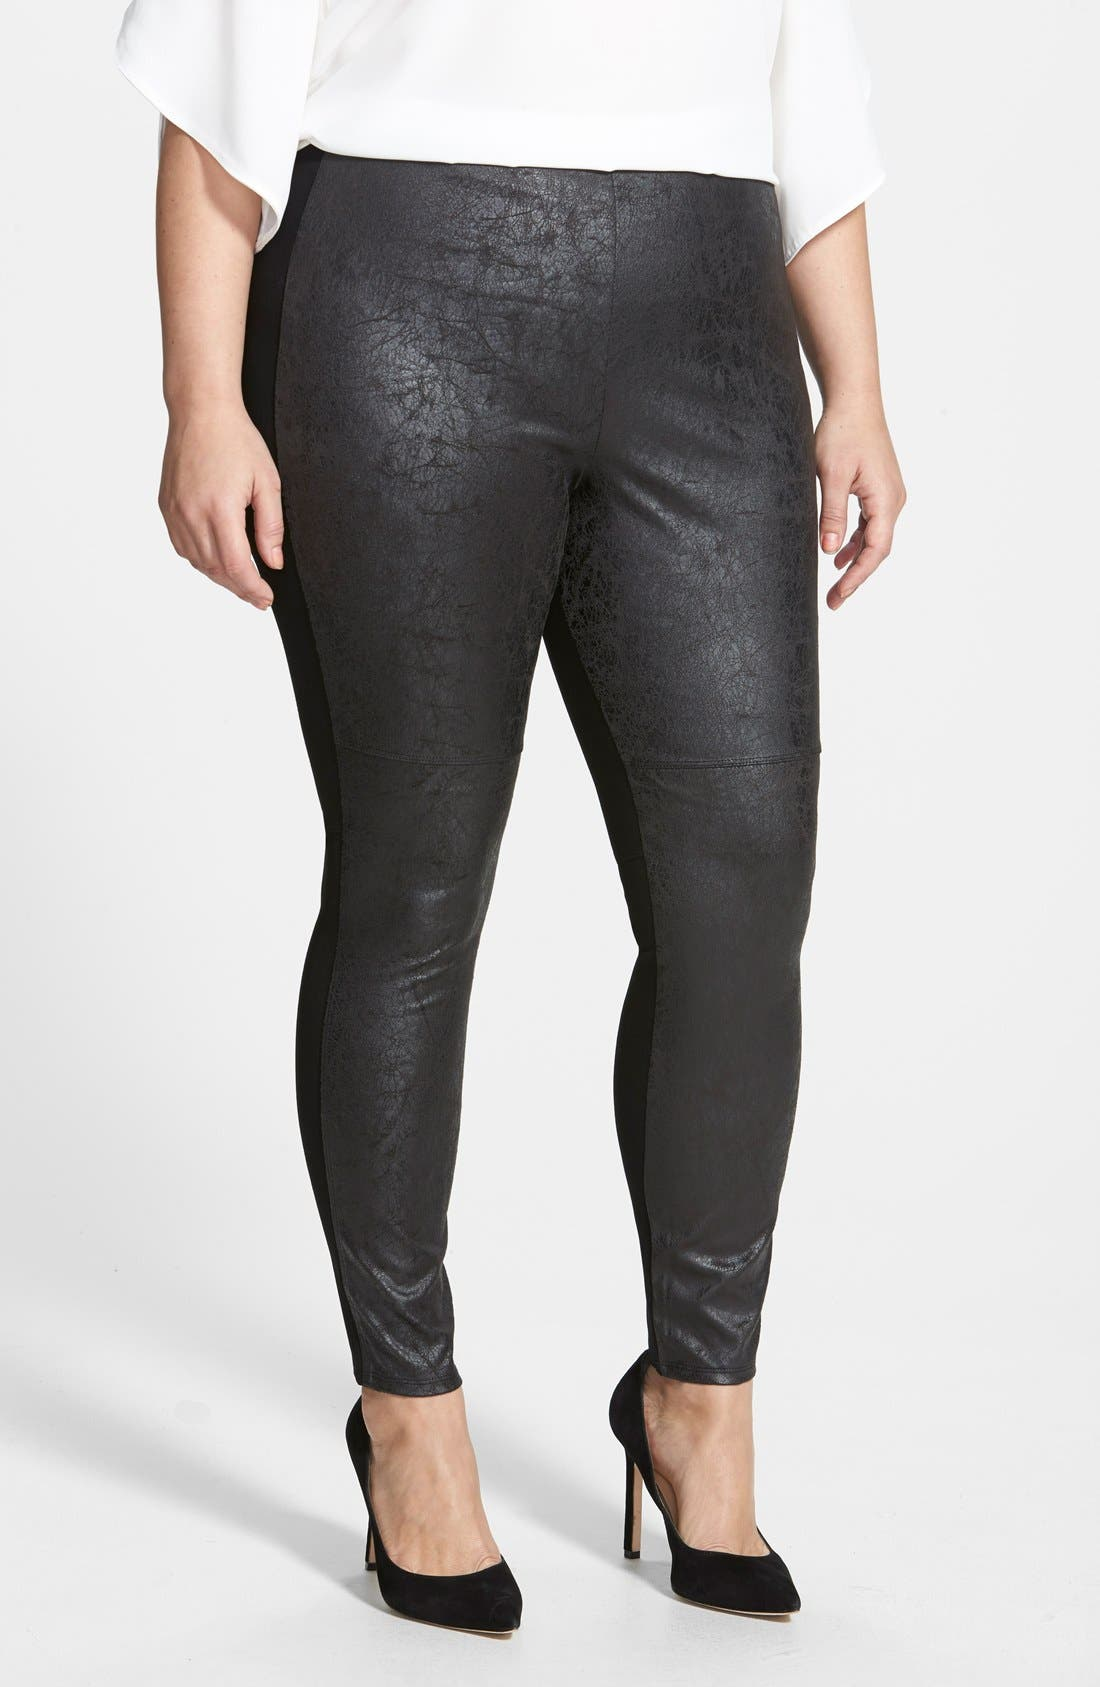 Main Image - Lyssé Distressed Faux Leather & Ponte Knit Leggings (Plus Size)